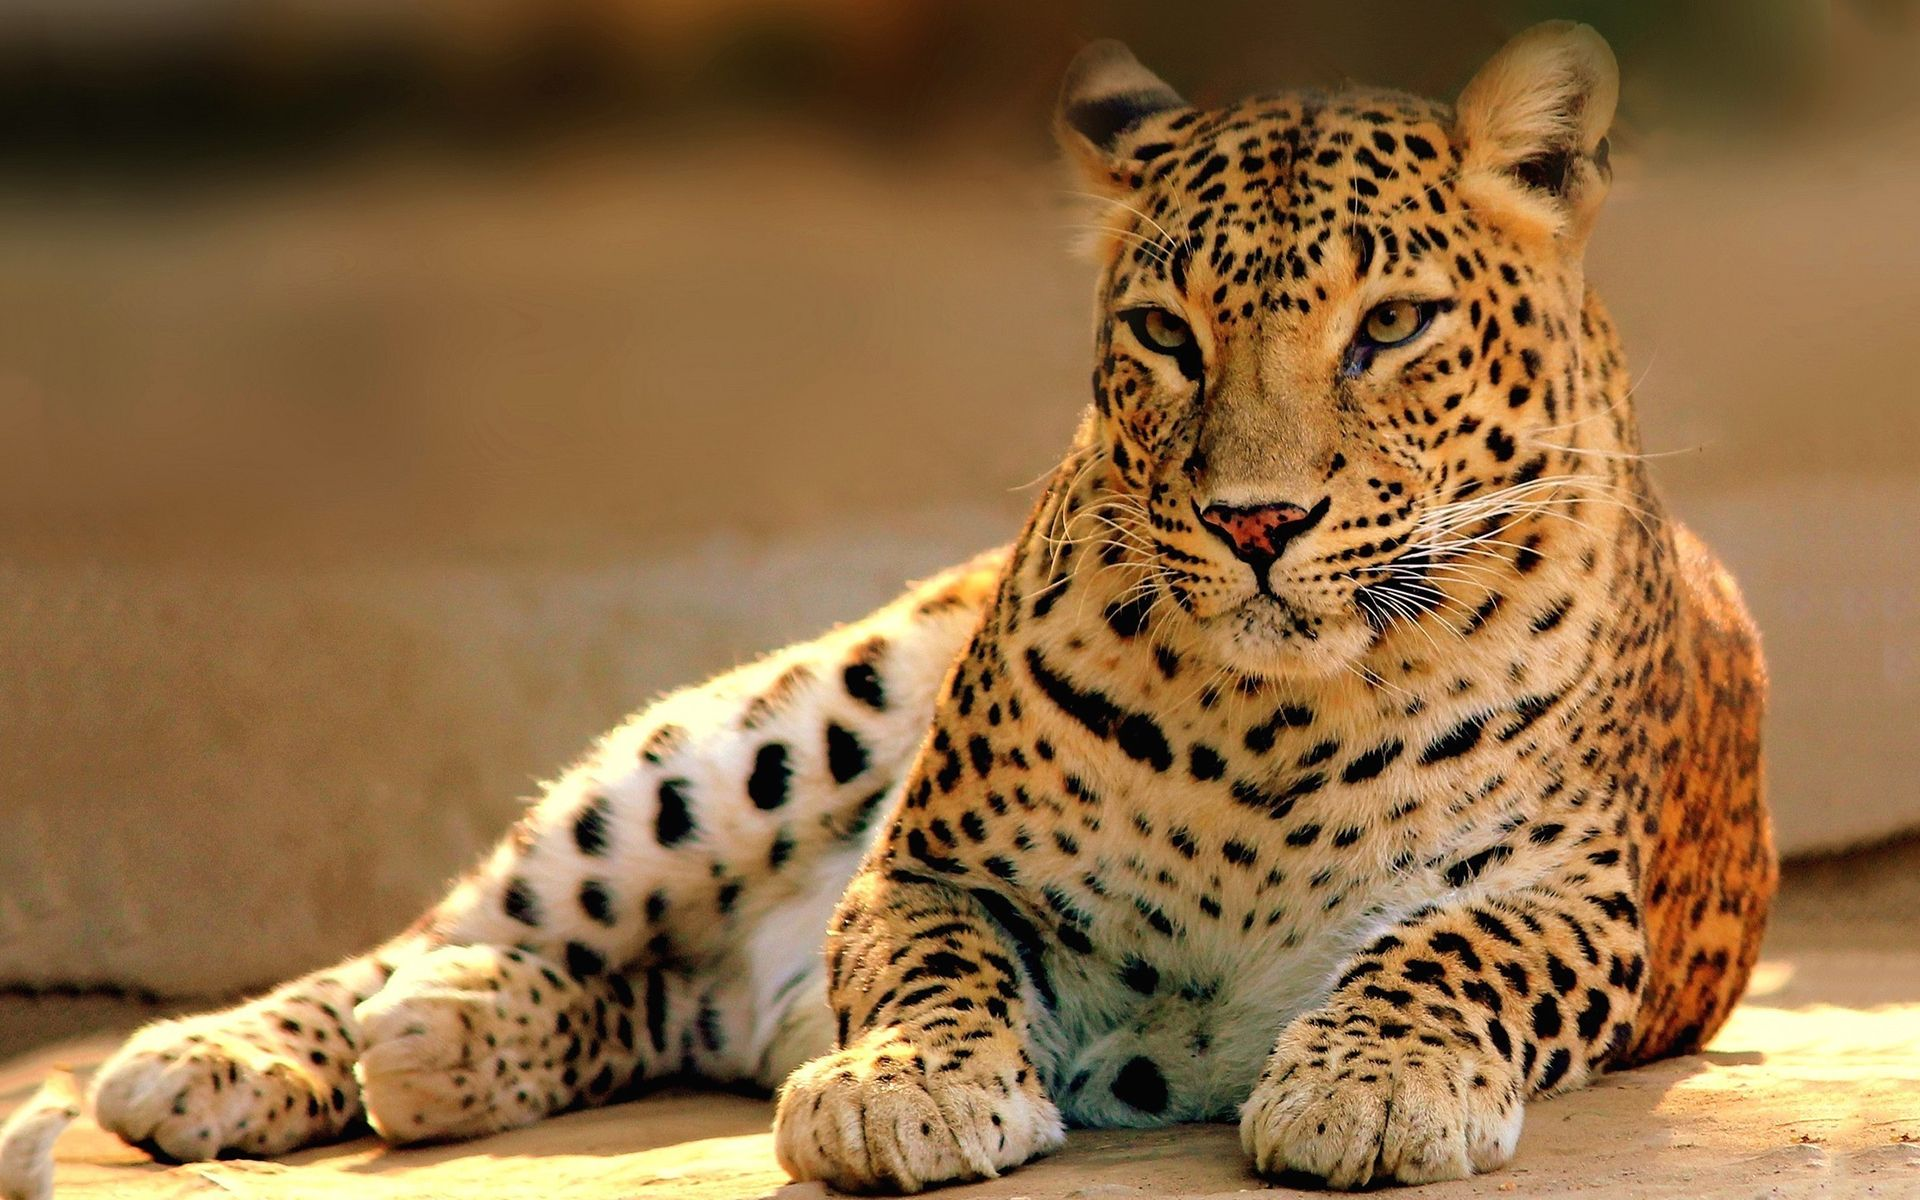 Ultra HD leopard wildlife Animals images, Leopard